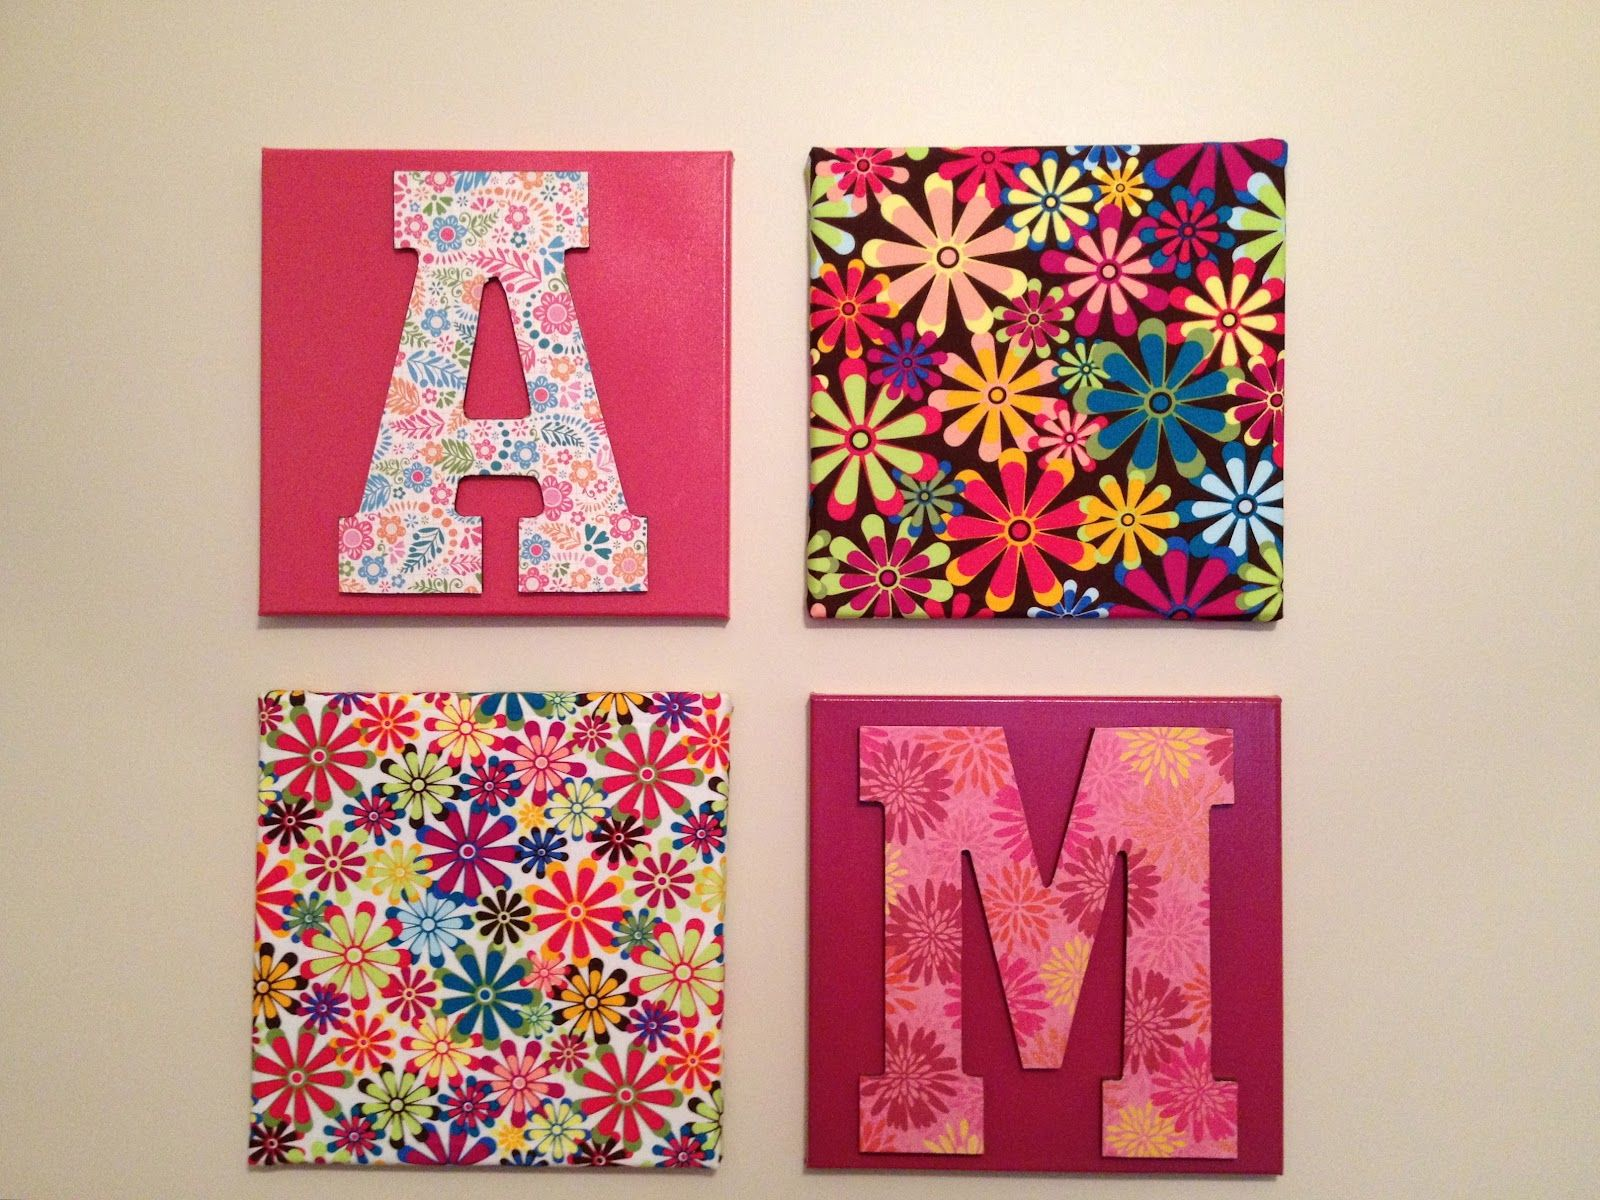 Wall hanging ideas with living unbound diy easy wall hanging ideas using canvas fabric and - Teenage wall art ideas ...